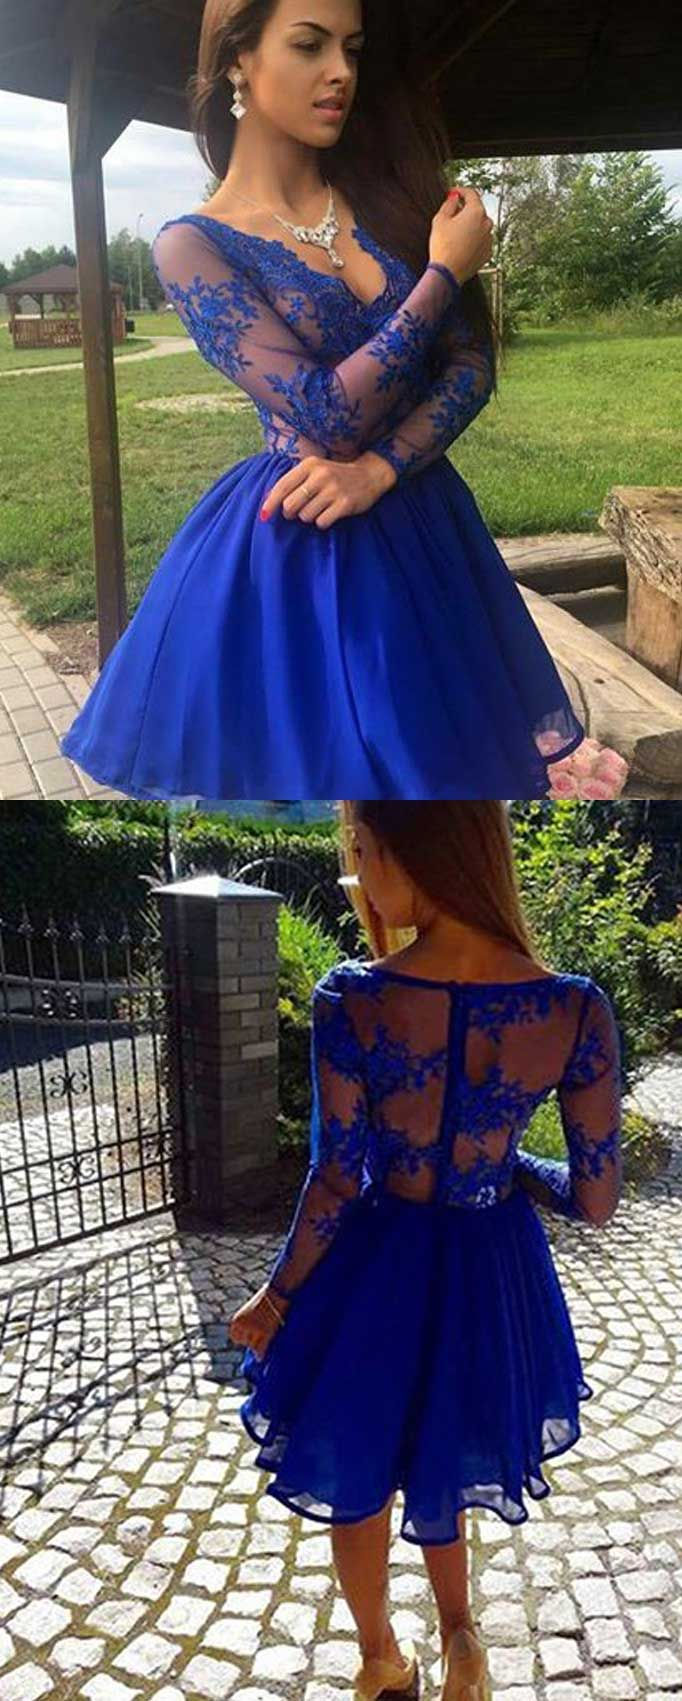 1f716ec8792b long sleeves lace prom dresses short,short royal blue homecoming dresses  with sleeves,royal blue tulle prom dresses with lace,v neck homecoming  dresses ...